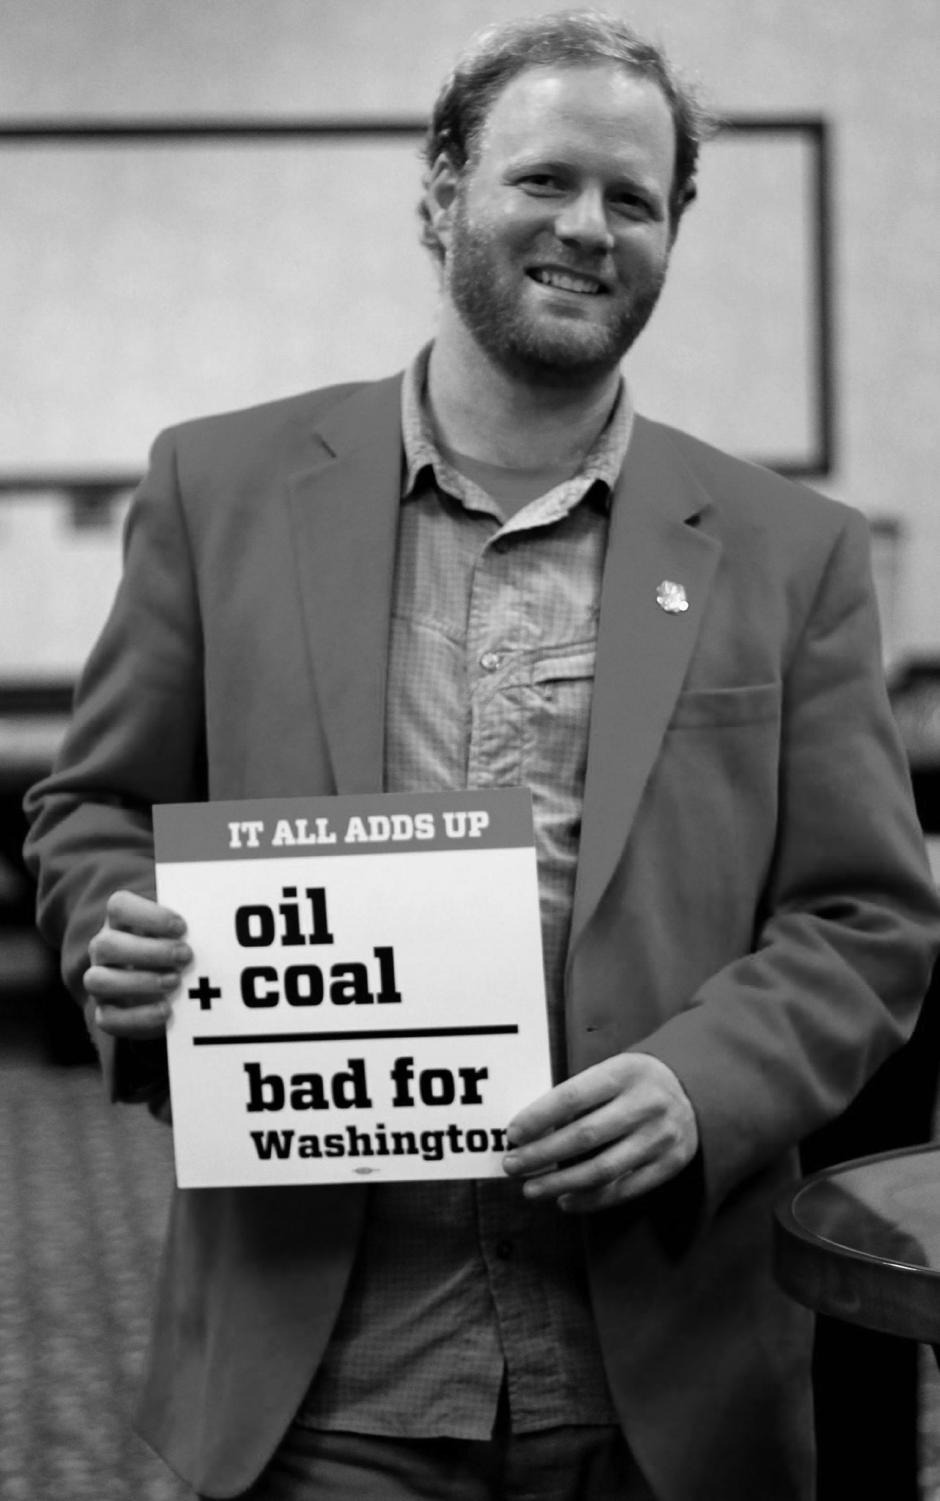 Jace Bylenga has been hired as EWU's Activist in Residence. Before working for EWU, Bylenga worked to stop the use of oil trains in the state of Washington | Photo courtesy of Sherri Urann